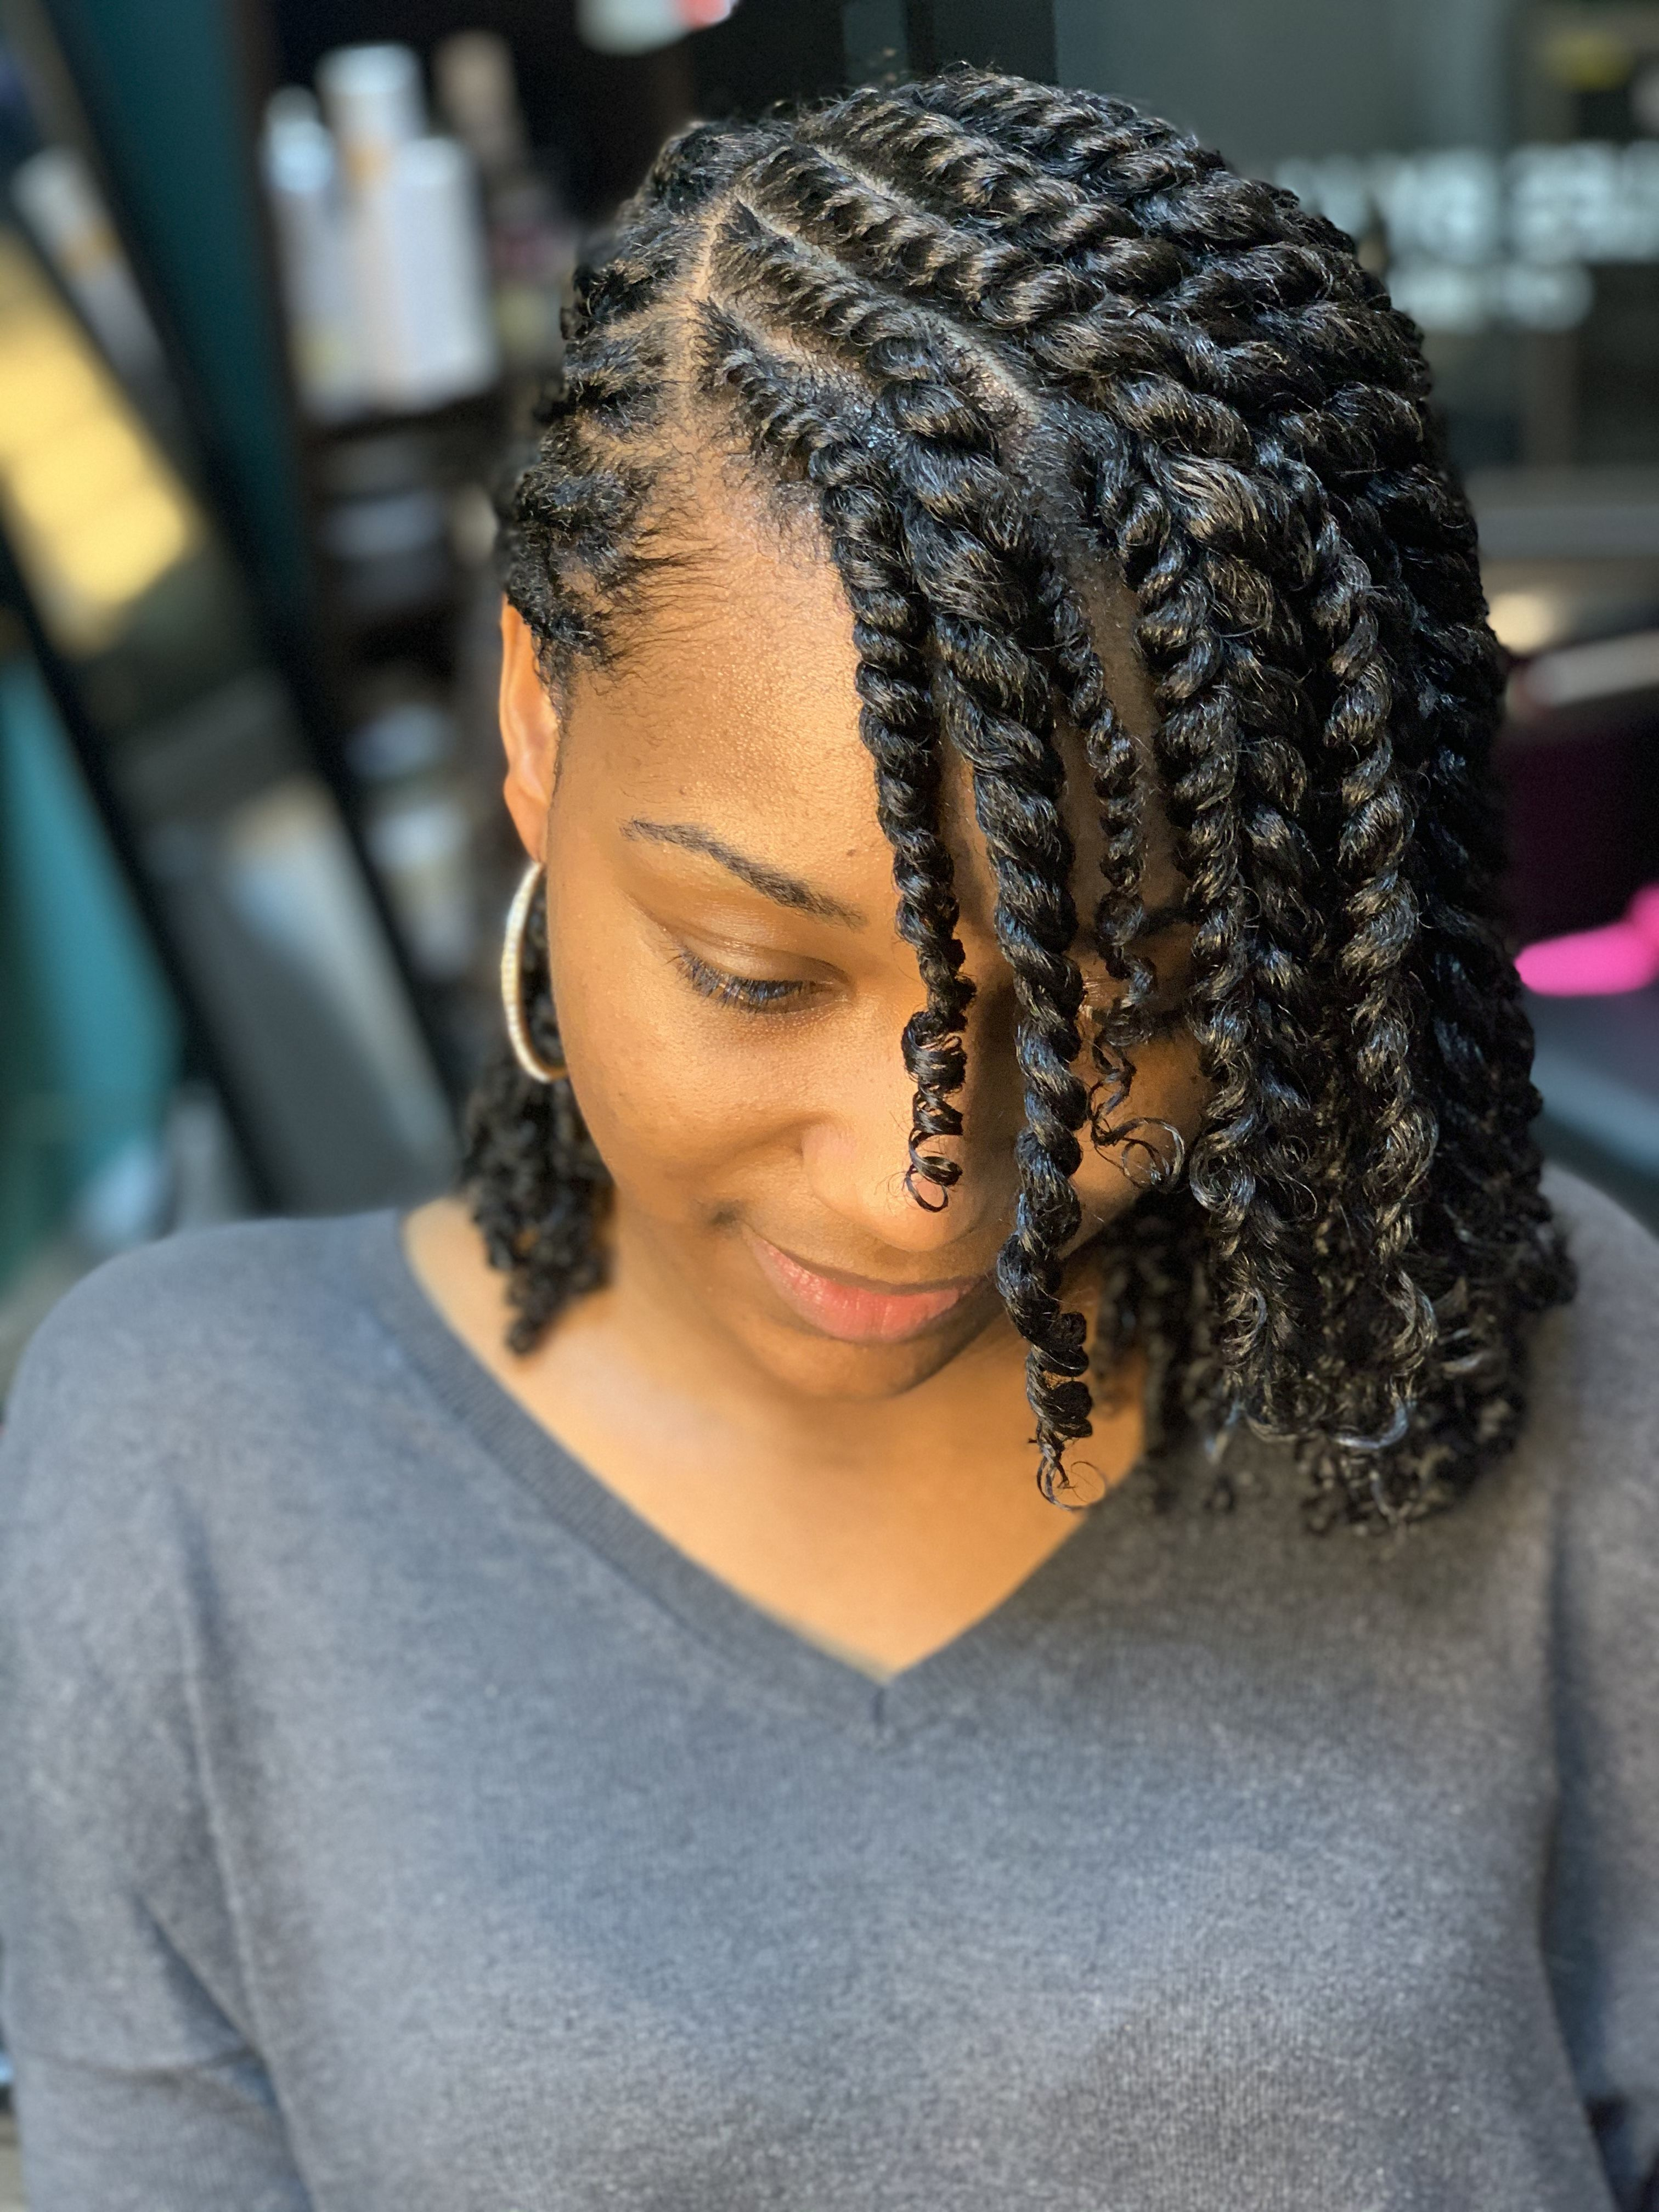 Super Cute Two Strand Twist In 2020 Natural Hair Twists Protective Hairstyles For Natural Hair Hair Twist Styles